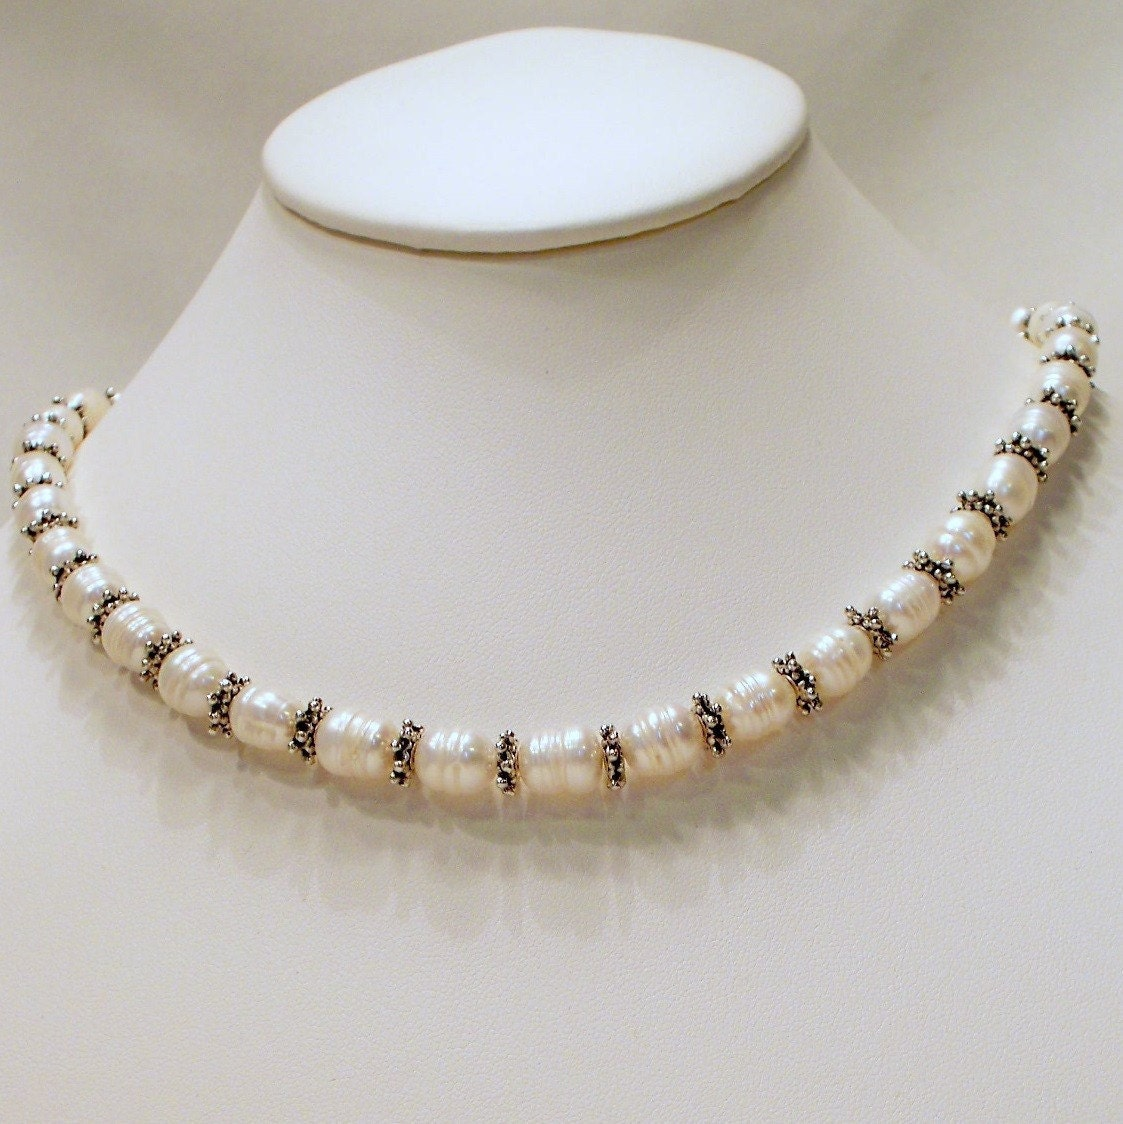 Single Strand Pearl Necklace: Renaissance Single Strand White Freshwater Pearl Necklace